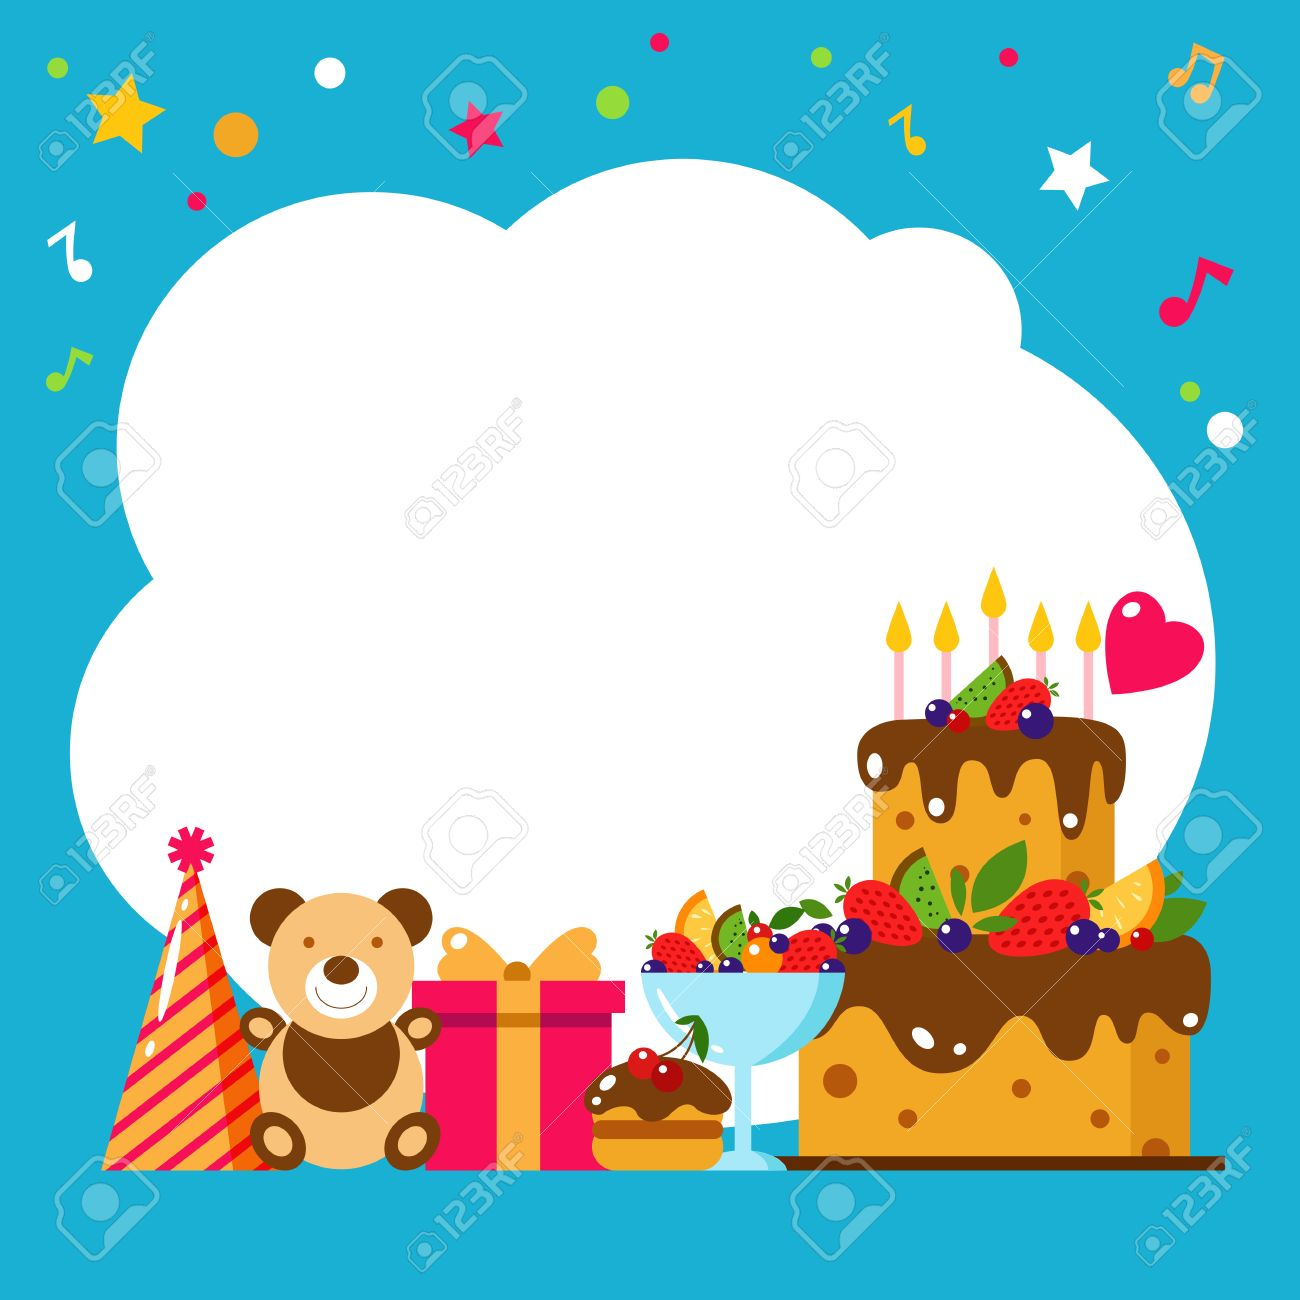 Happy birthday card flat vector illustration kids party design happy birthday card flat vector illustration kids party design elements cake gift bookmarktalkfo